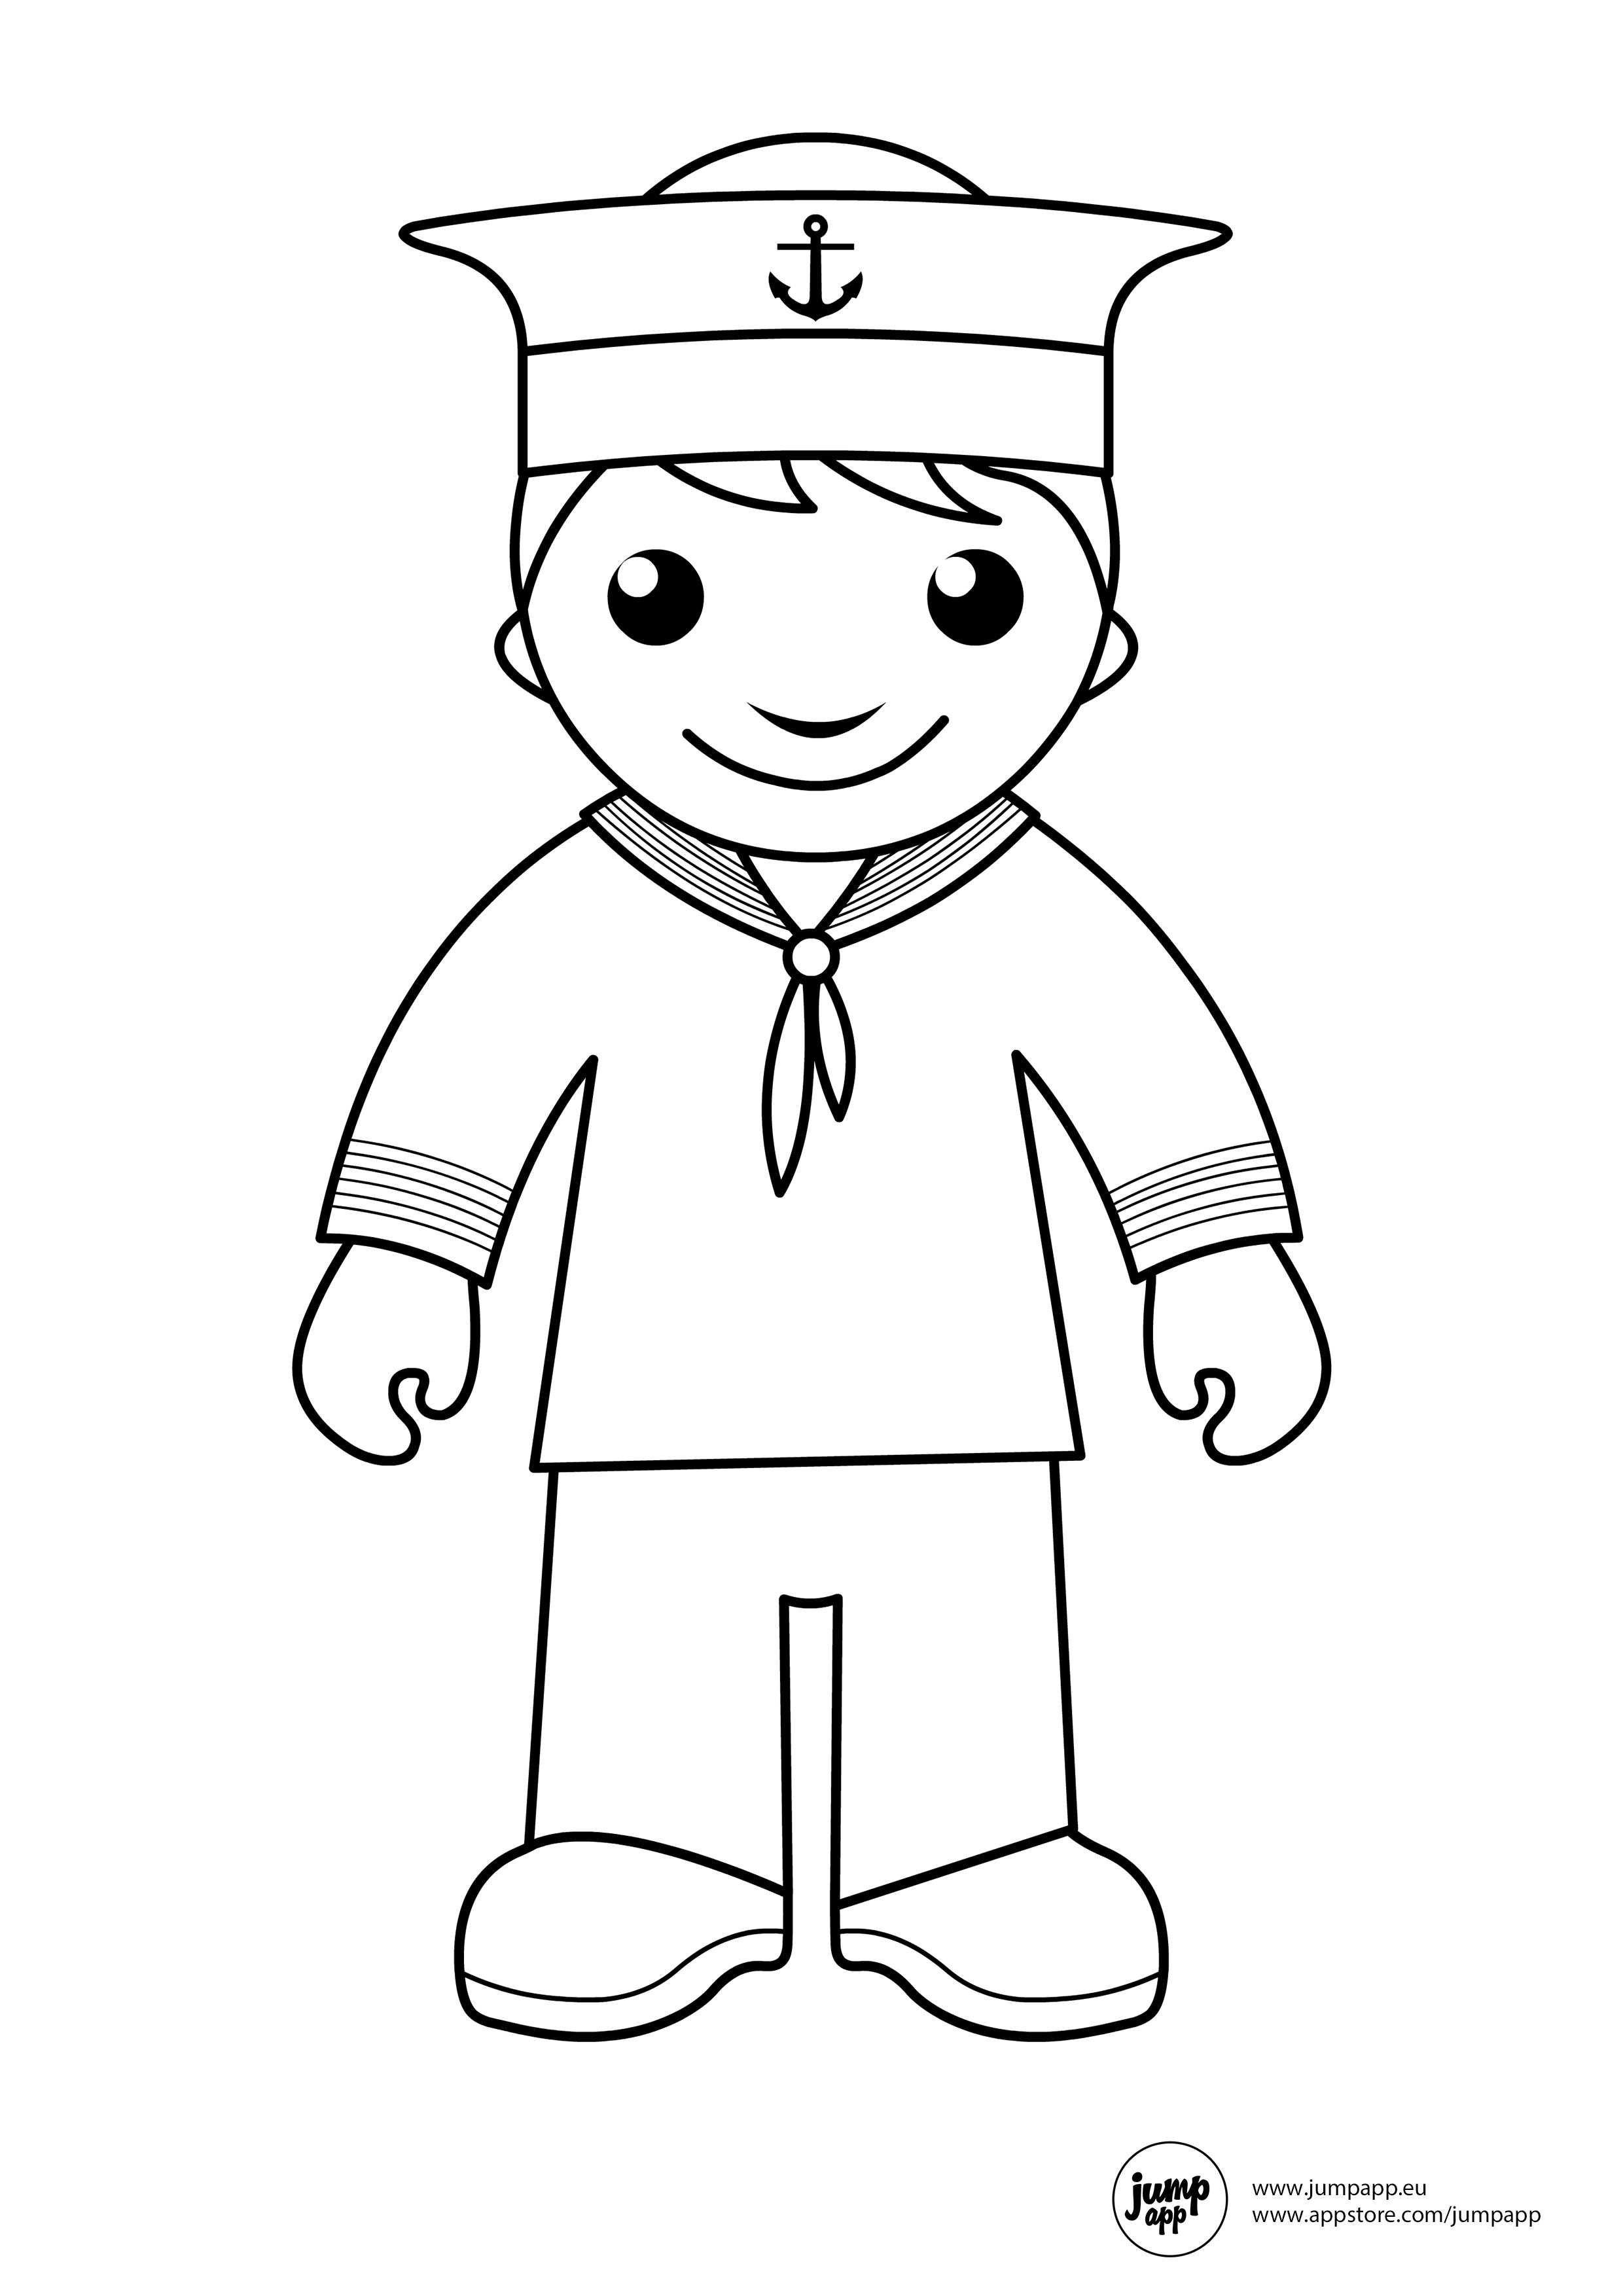 sailor | Printable Coloring Pages | Pinterest | Profesiones